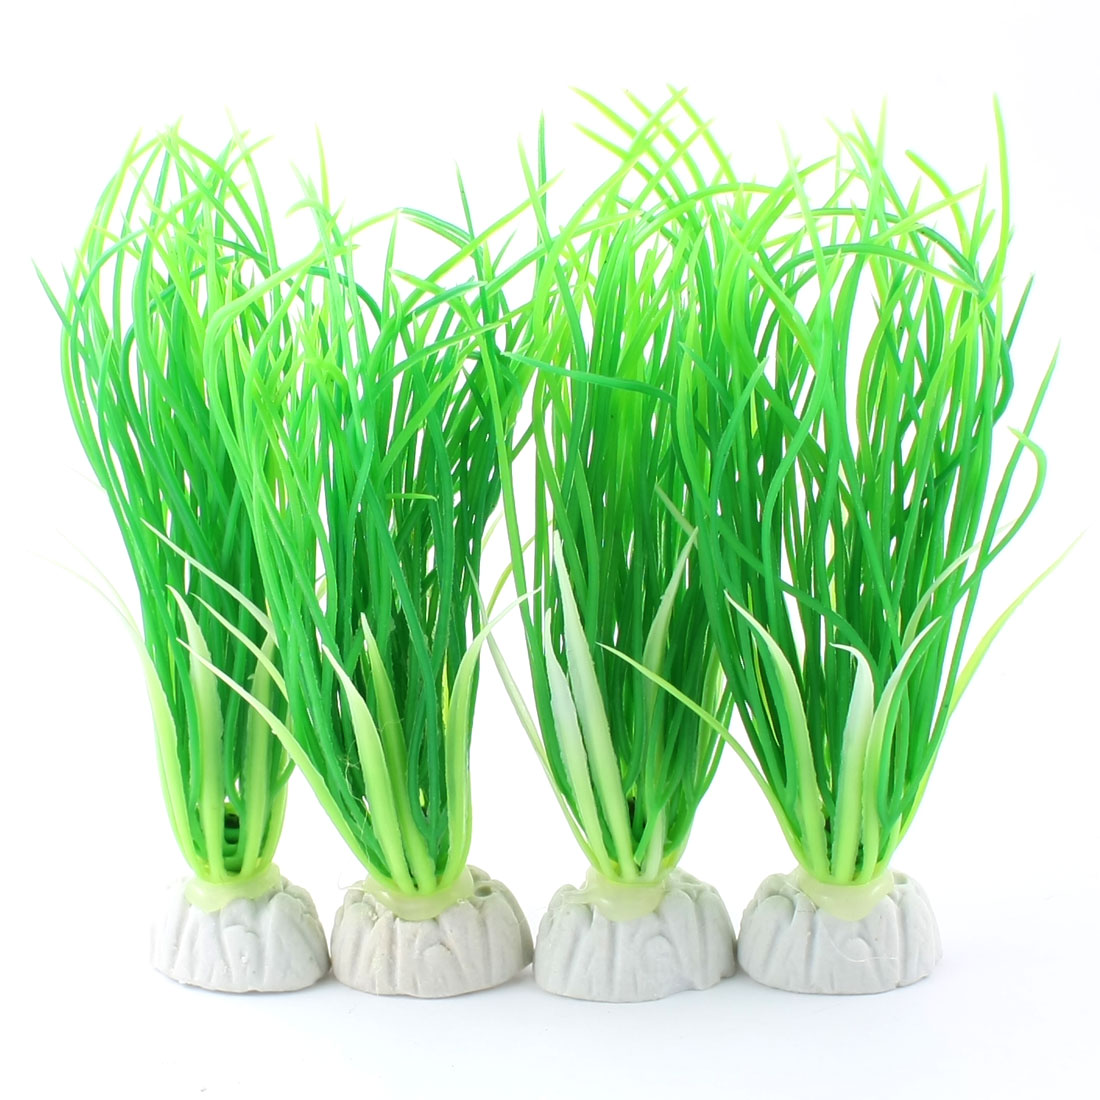 "4 Pcs Aquarium Underwater Emulational Plastic Grass Plant Decor Green 5.5"" High"